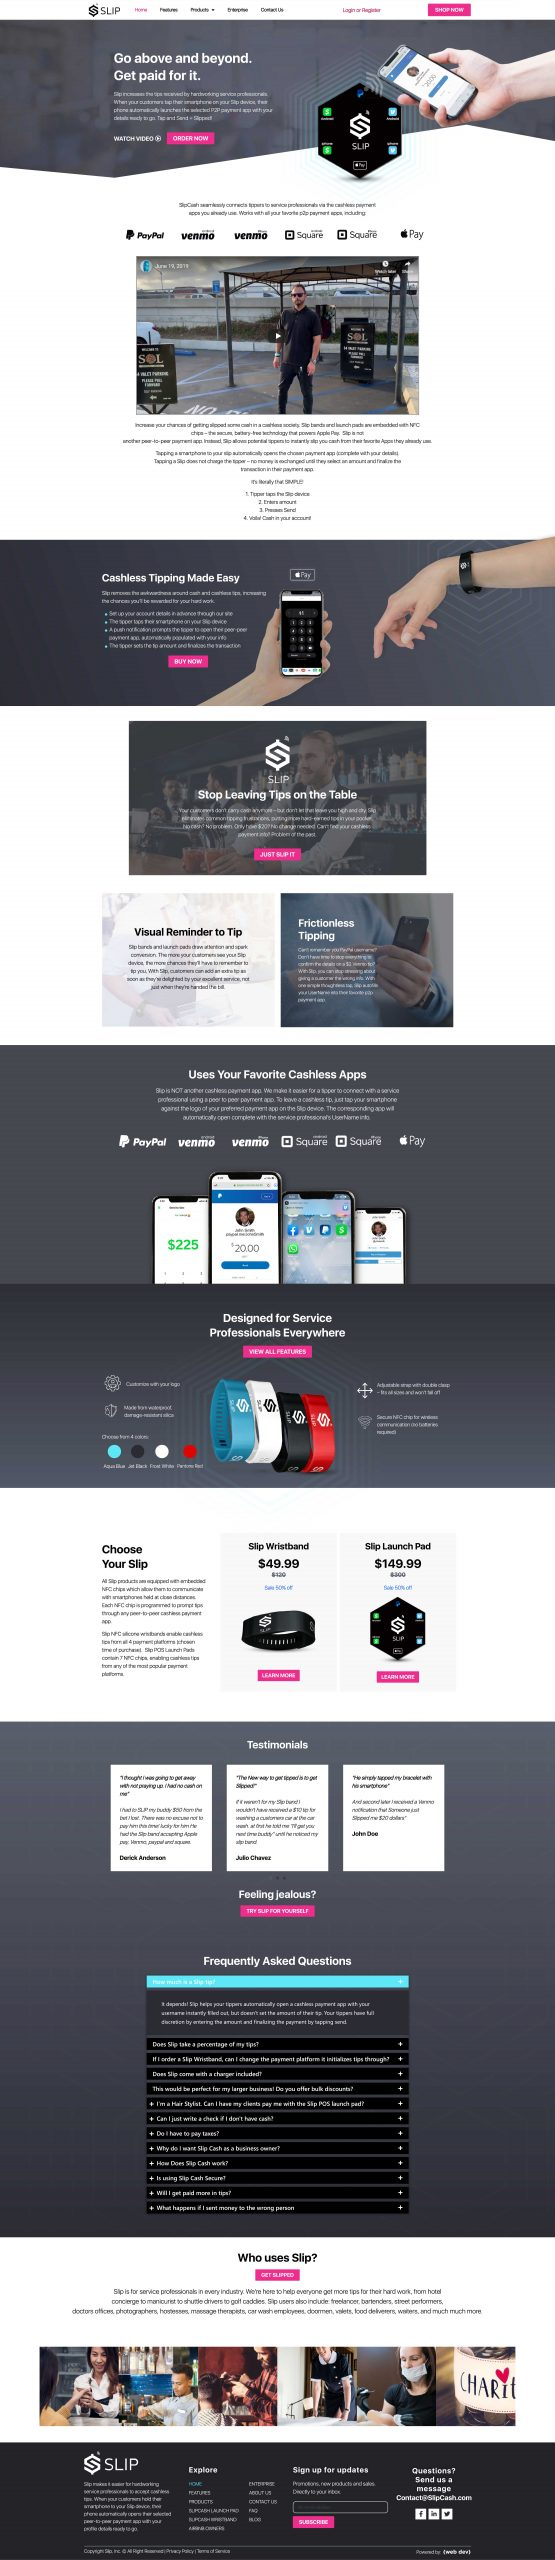 eCommerce wordpress website design